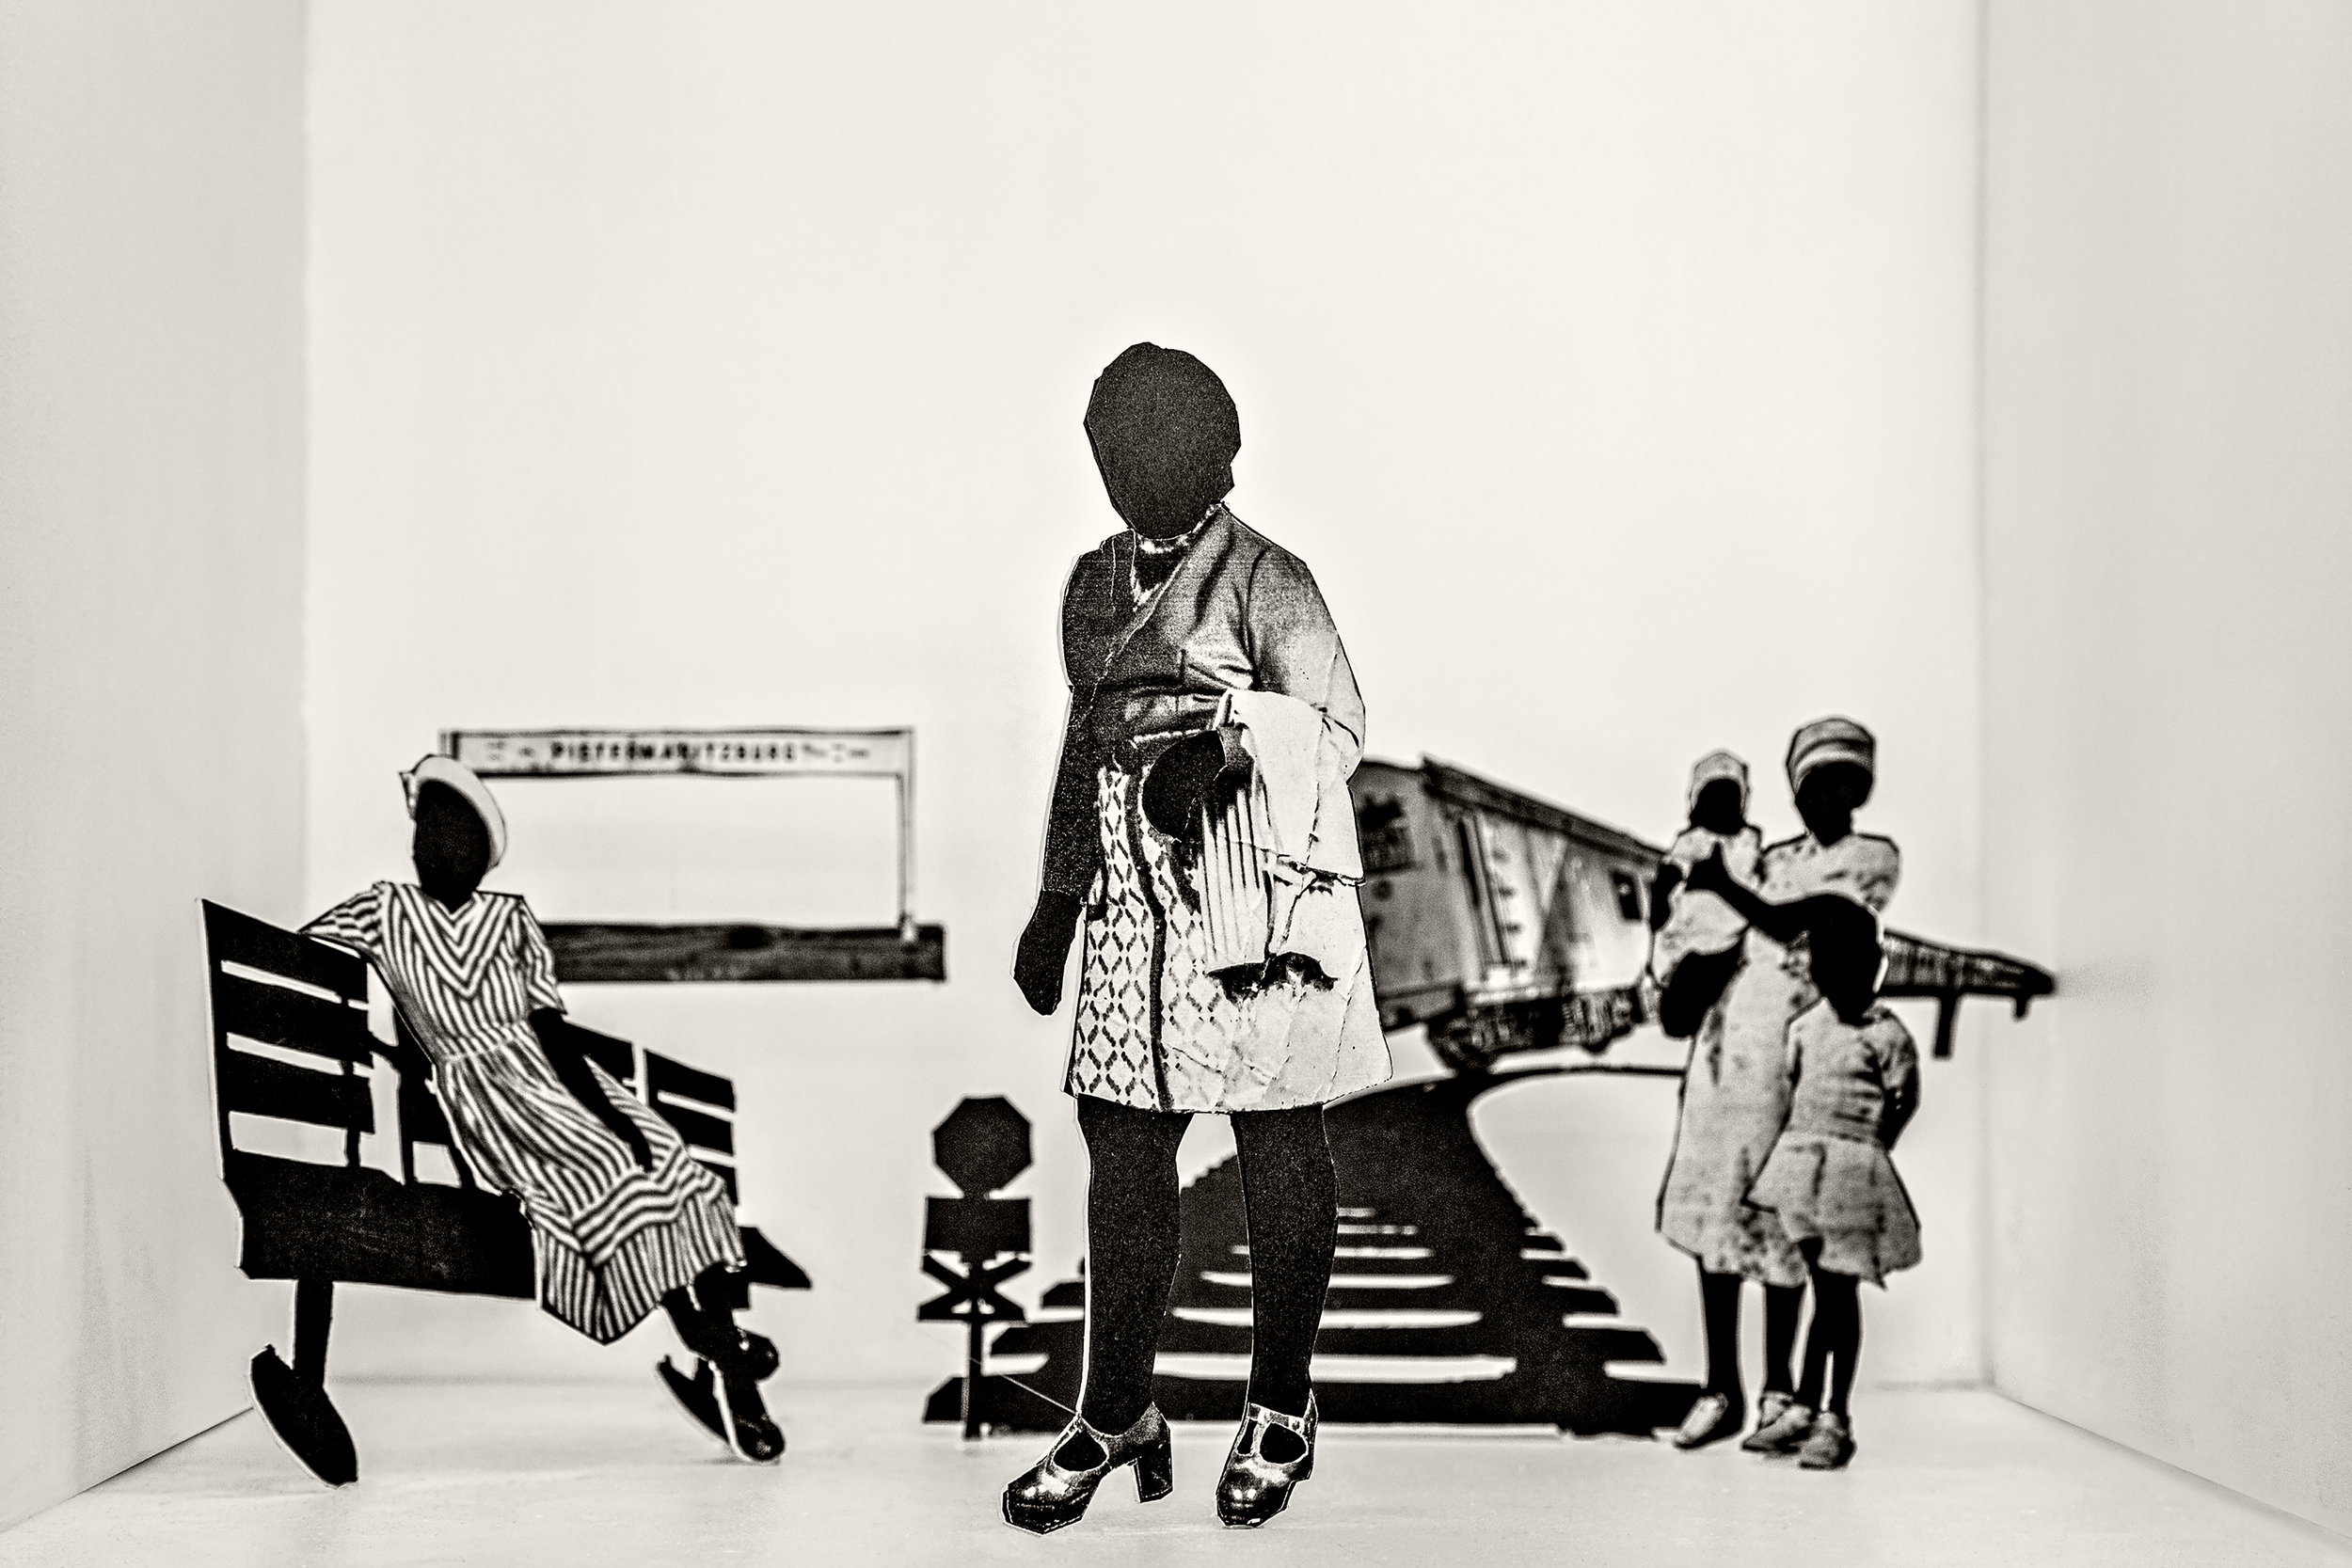 LEBOHANG KGANYE  You couldn't stop the train in time,  2018, Inspired by The train driver by Athol Fugard, Inkjet print on cotton rag paper, 25 x 35 inches; 64 x 90 cm, Edition 3/5 Courtesy AFRONOVA GALLERY